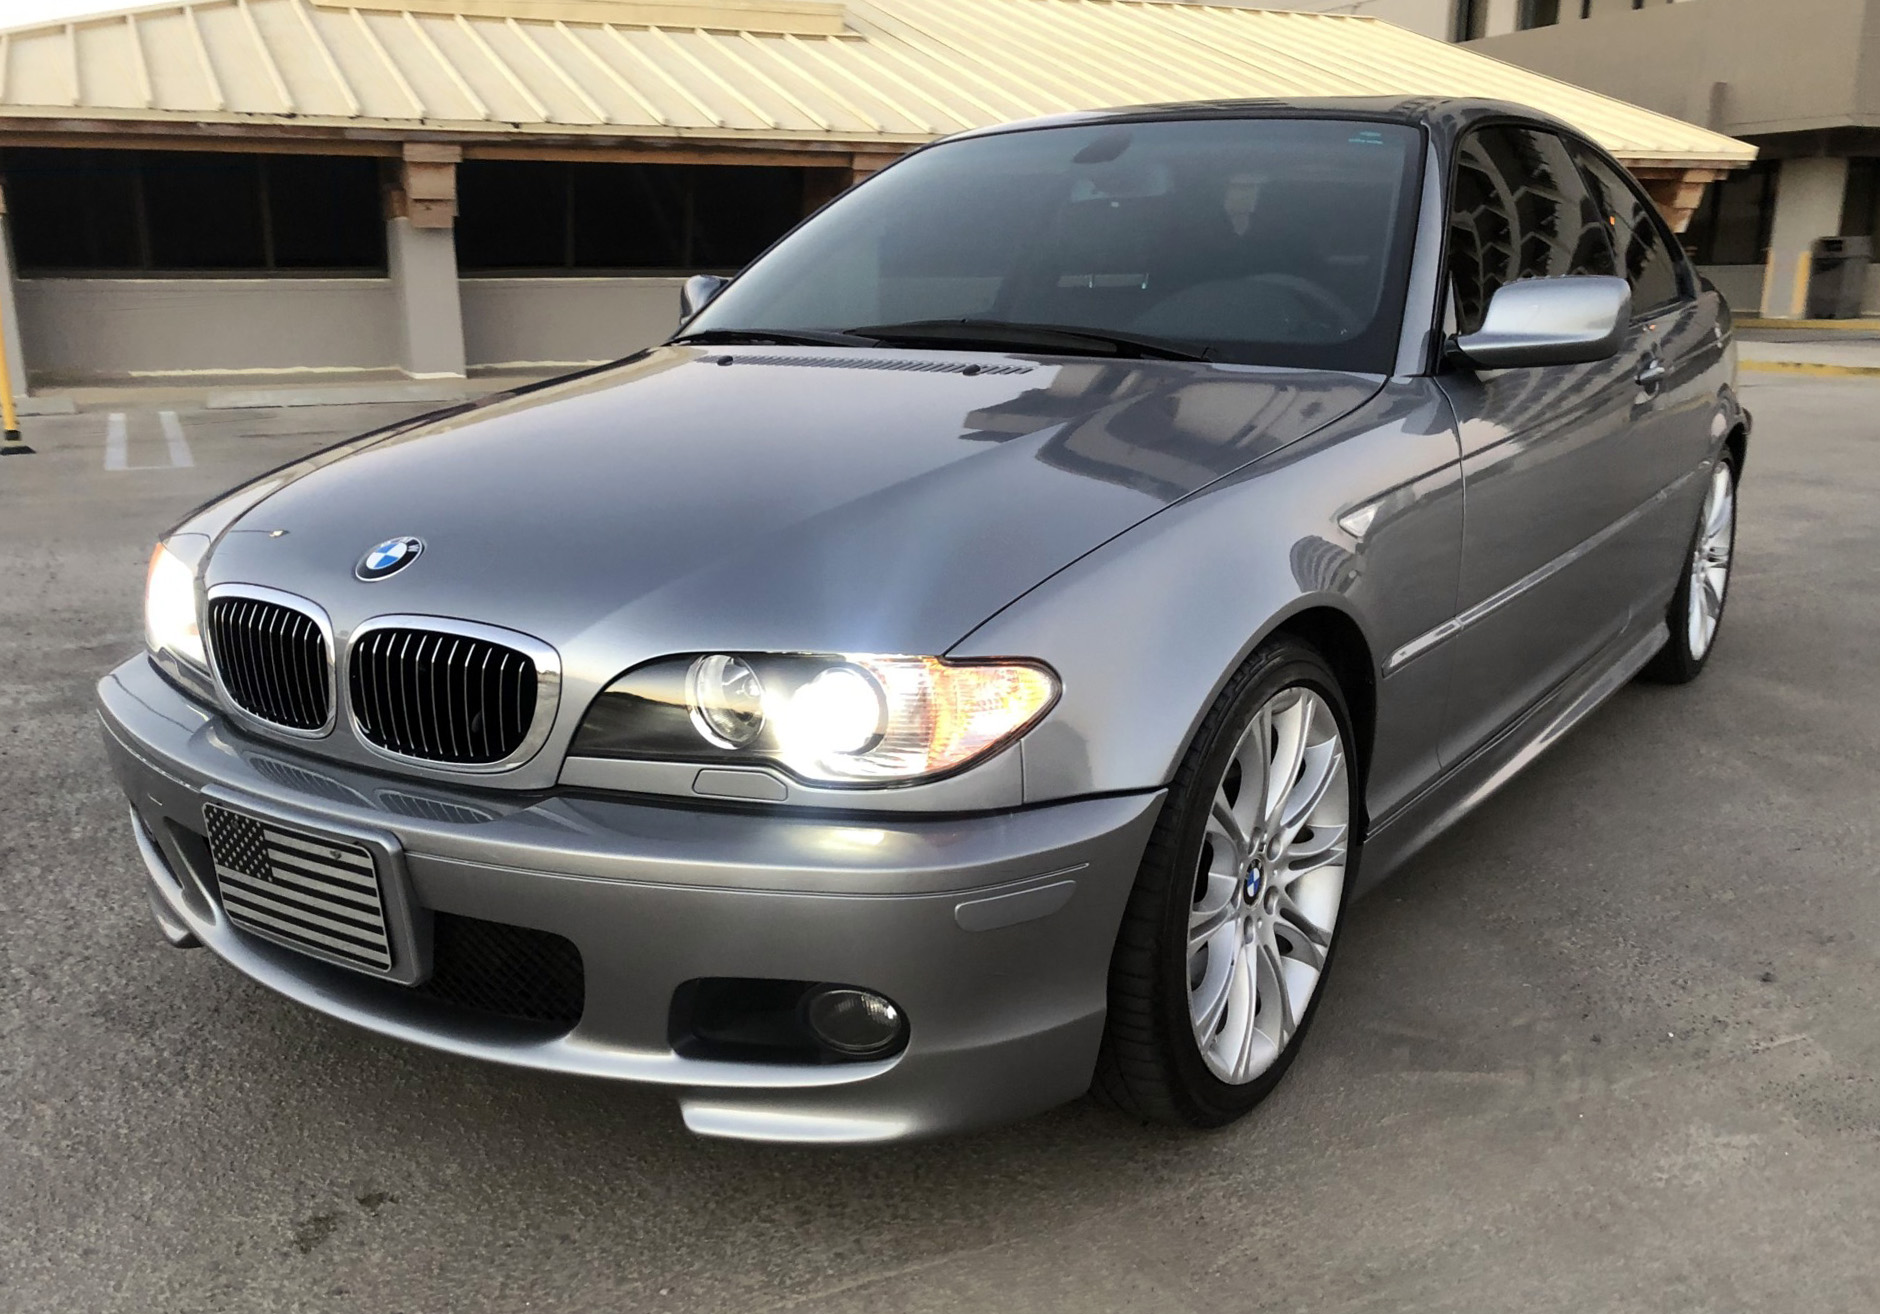 hight resolution of 2004 bmw 330ci zhp 6 speed for sale on bat auctions closed on december 20 2018 lot 15 015 bring a trailer